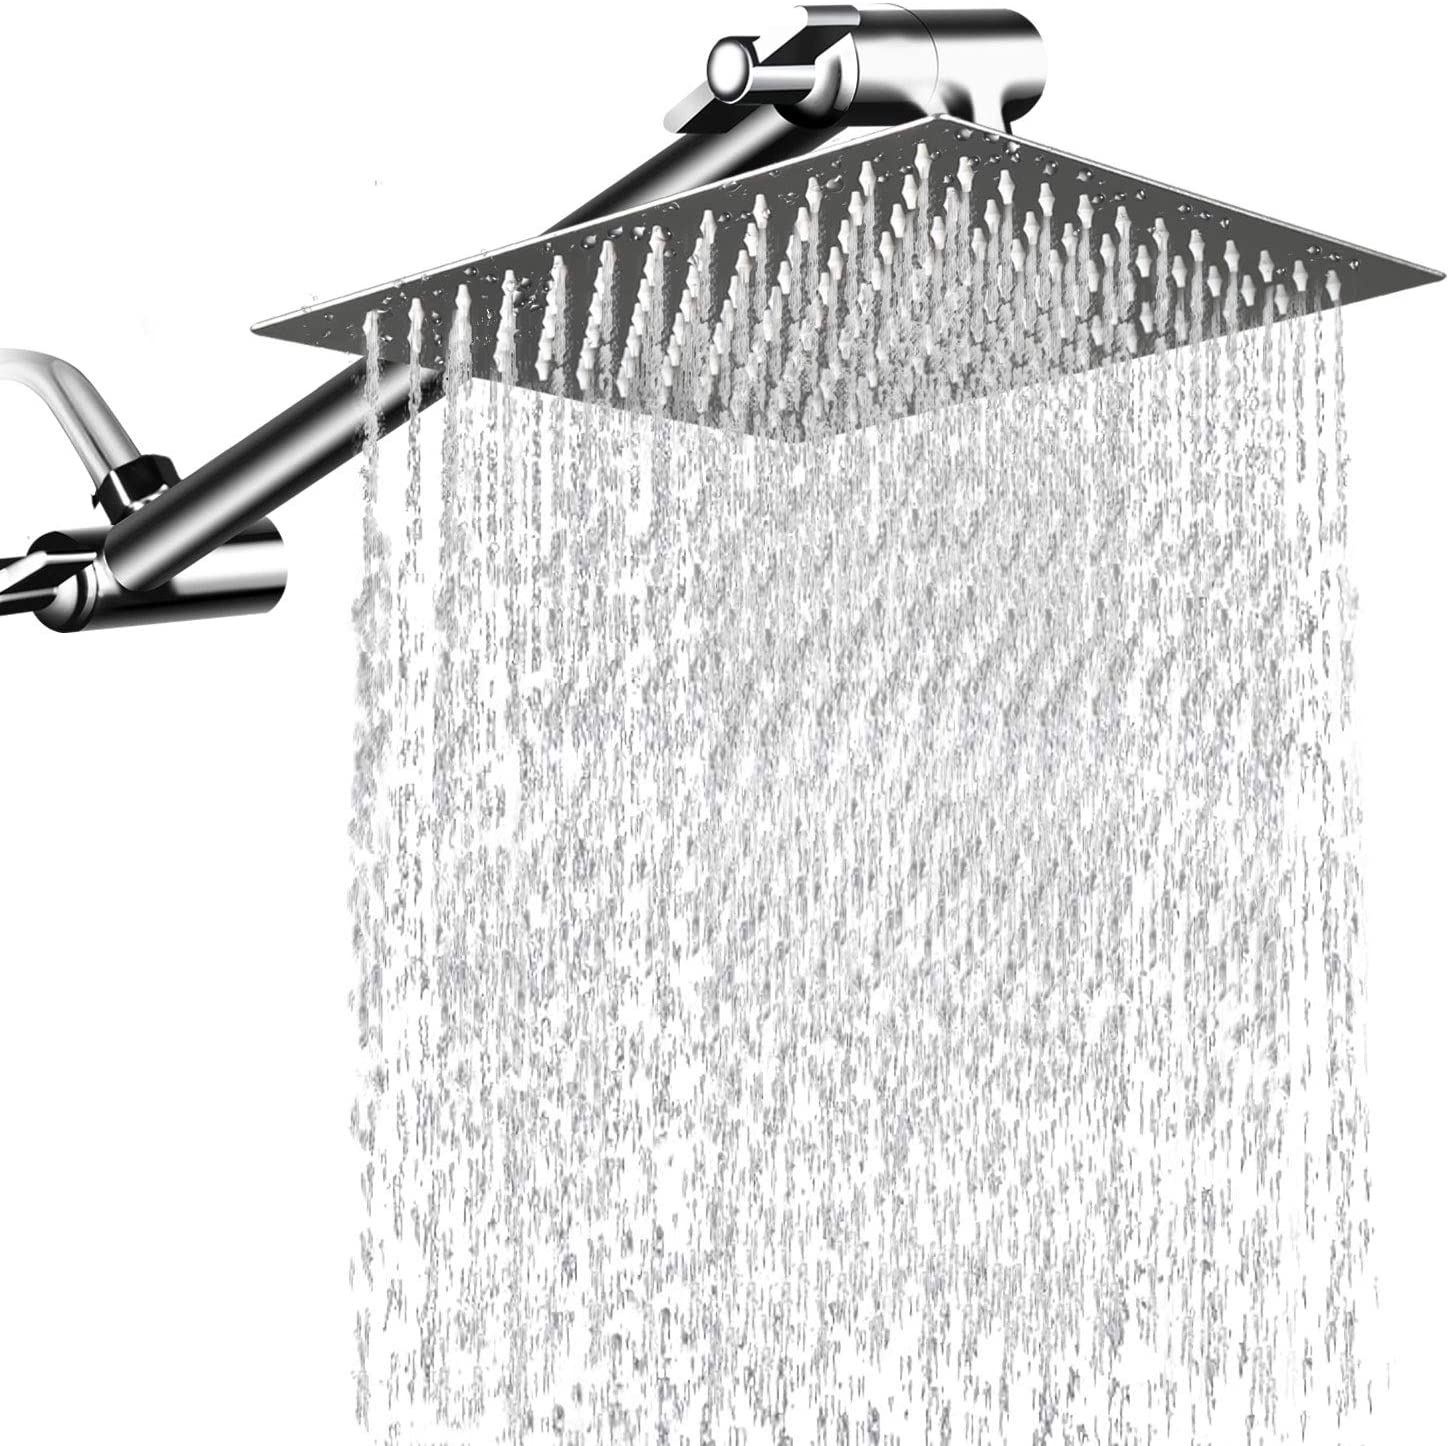 Mesun High Pressure Showerhead